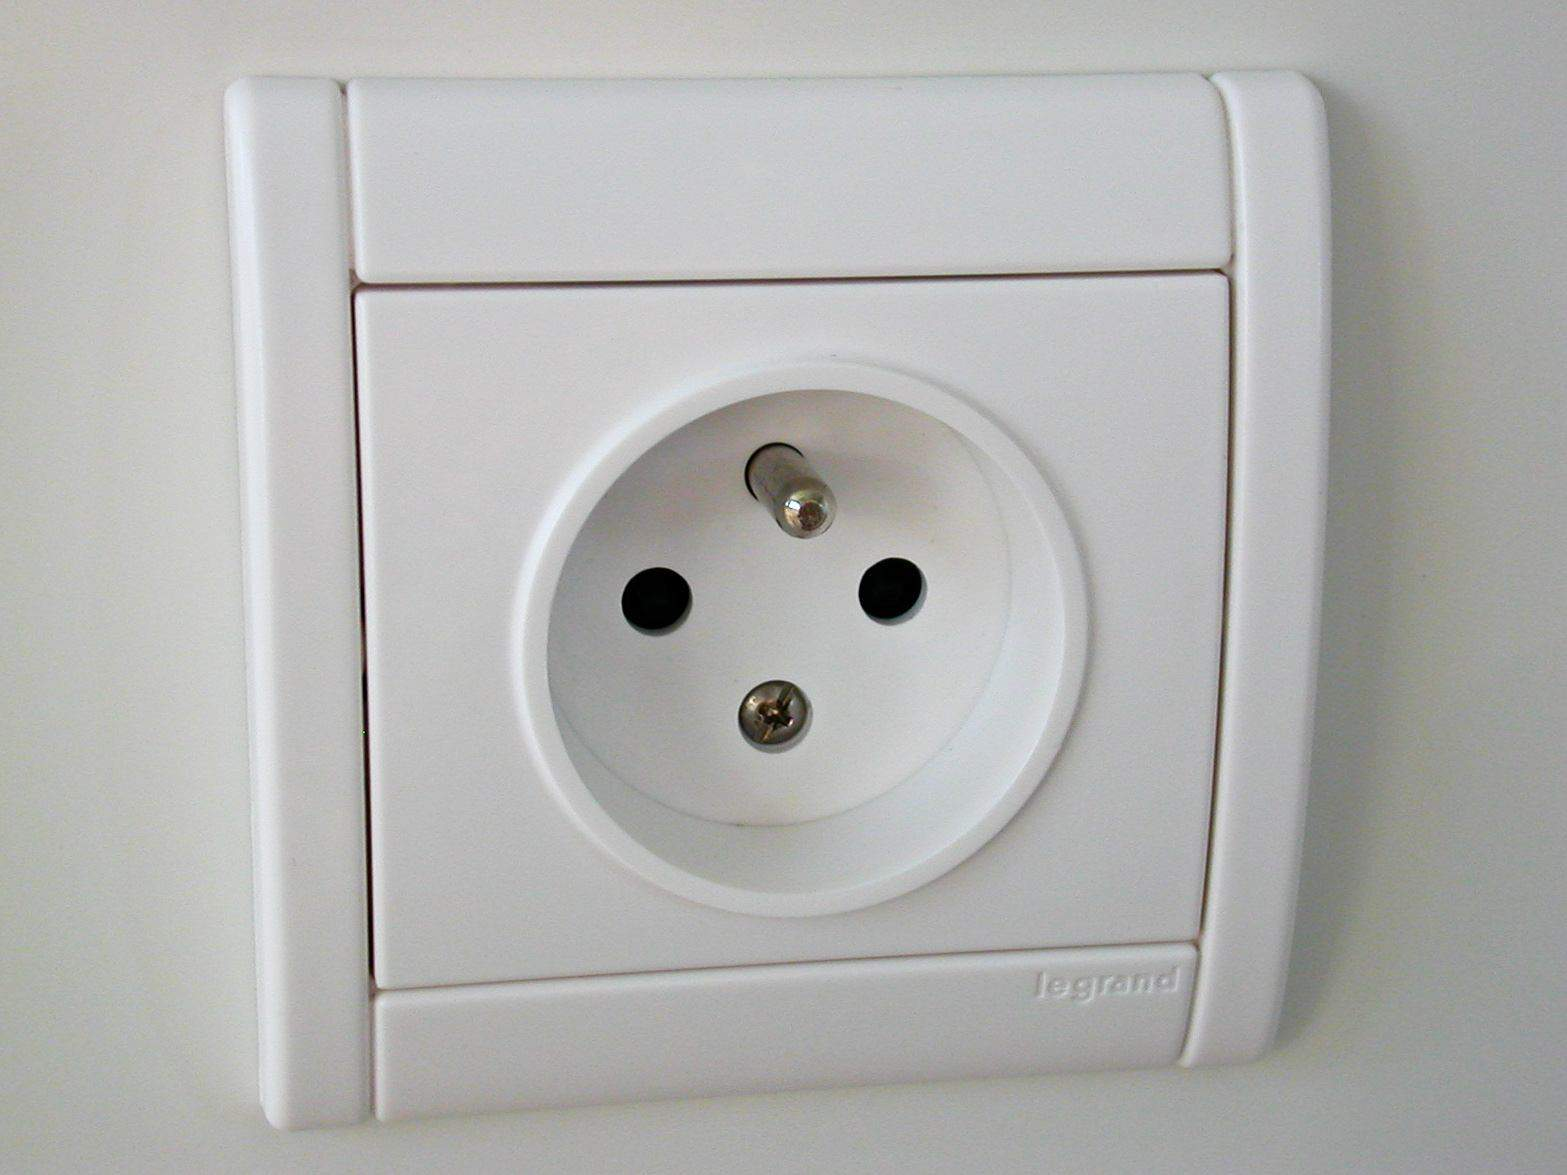 European Electrical Socket